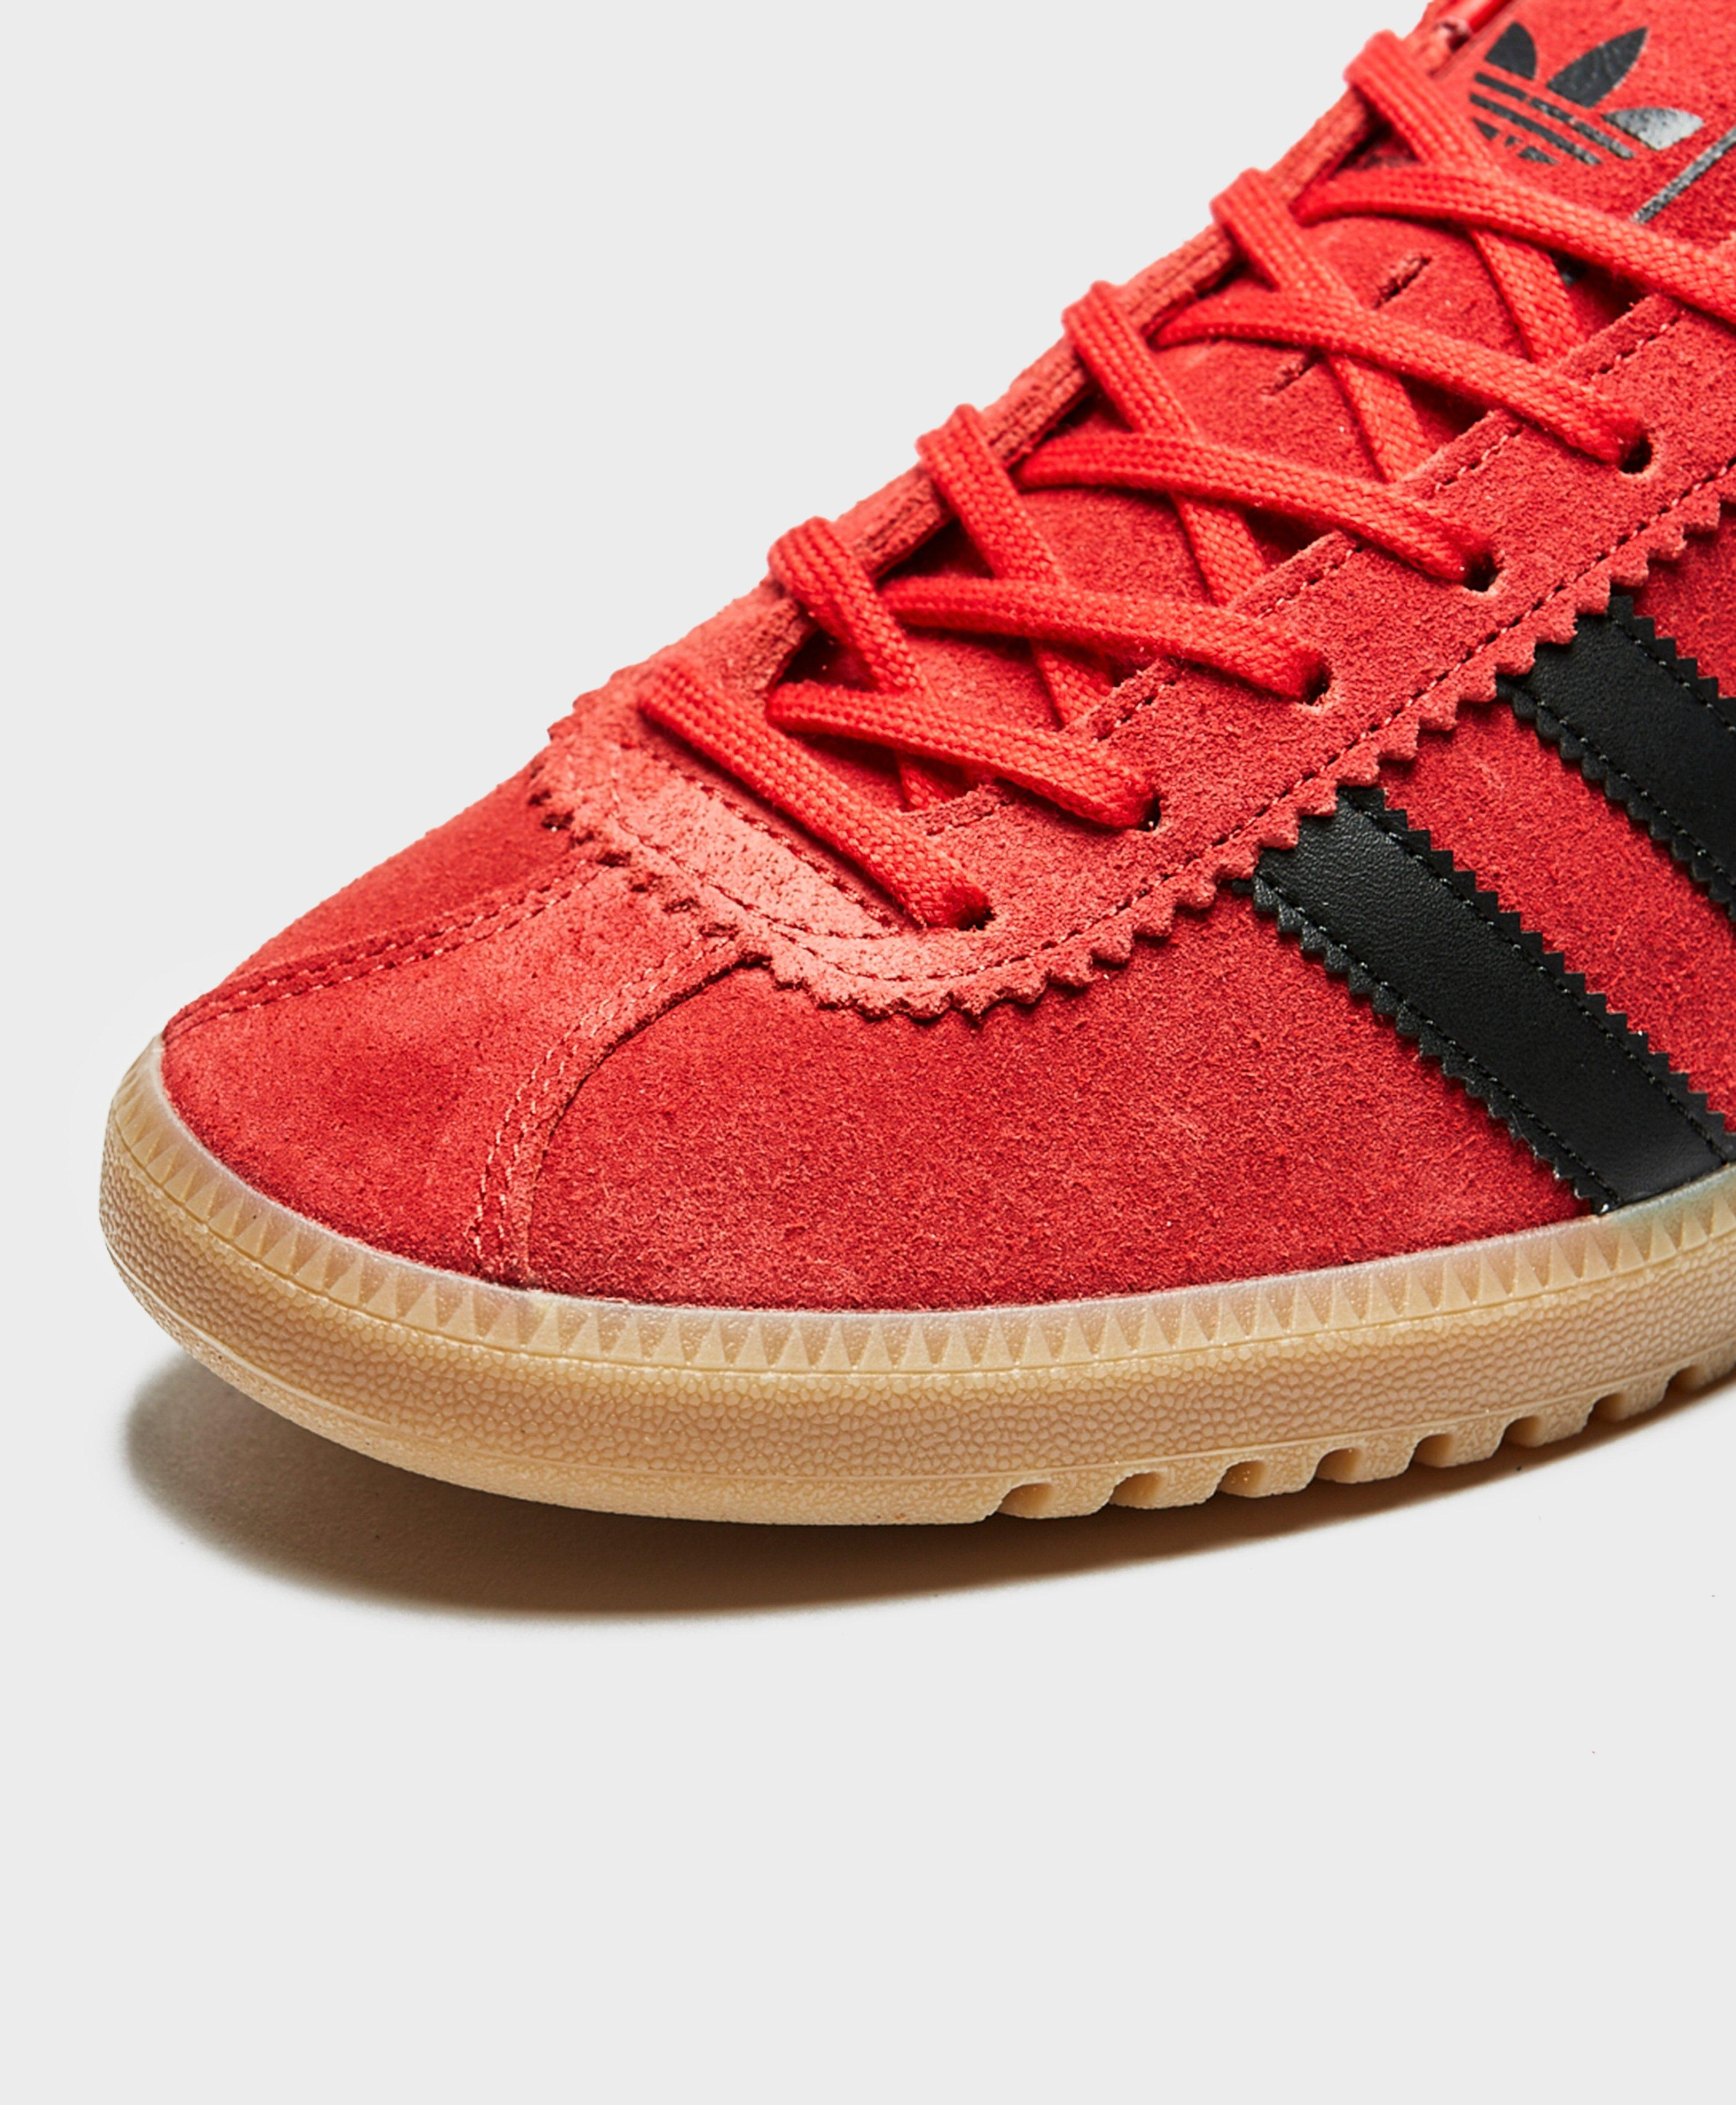 0a3bea758a8 Lyst - adidas Originals Bermuda Scarlet Red   Black Trainers in Red ...